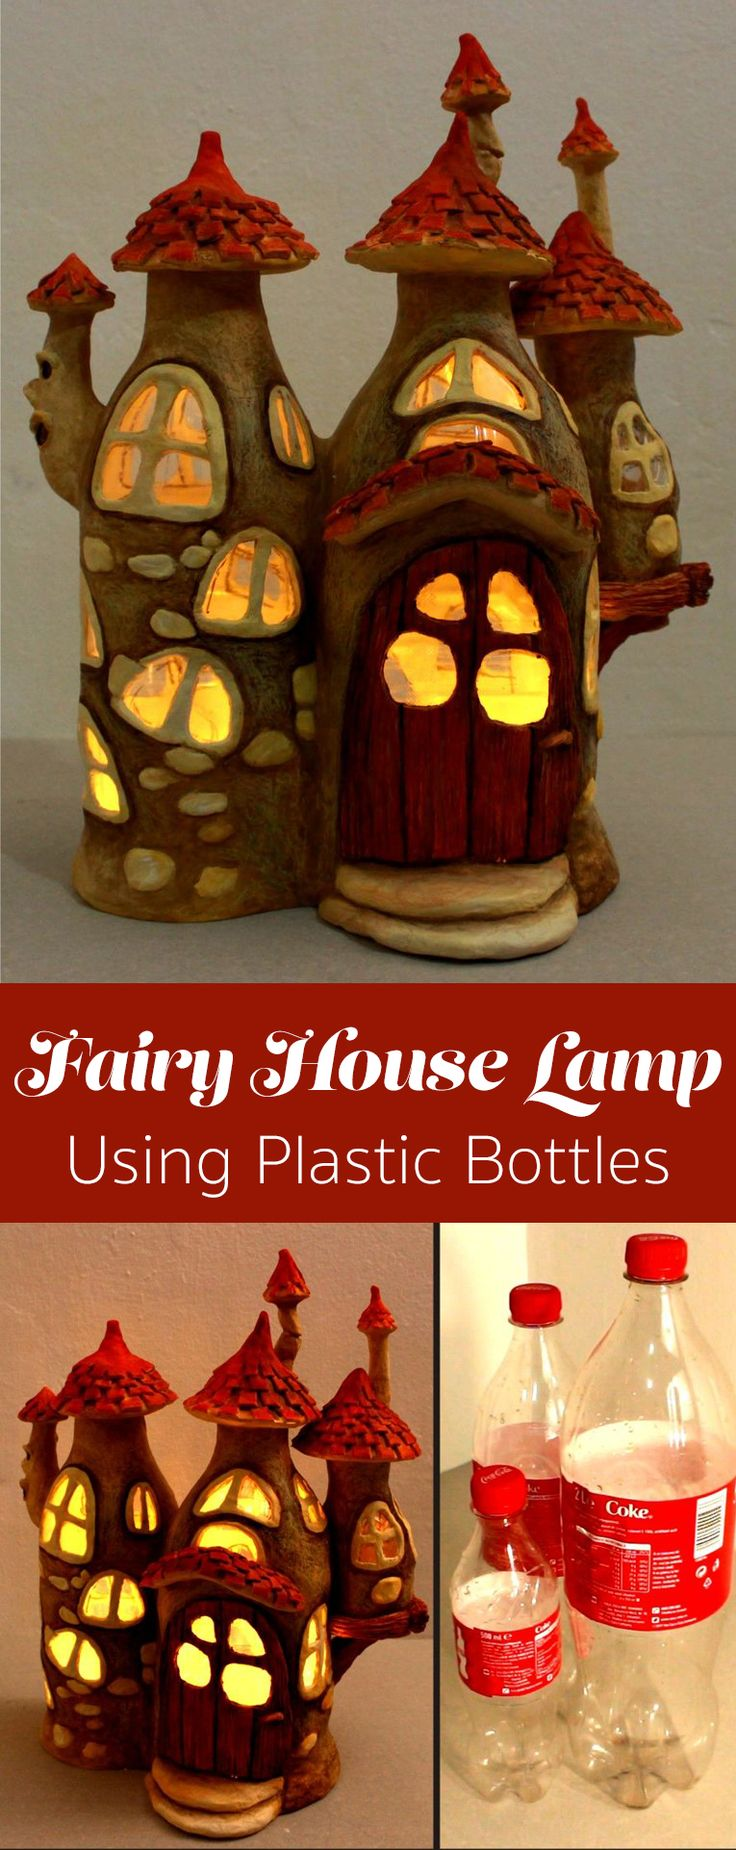 Fairy House Lamp Using Plastic Bottles | Paper clay, Fairy houses ...